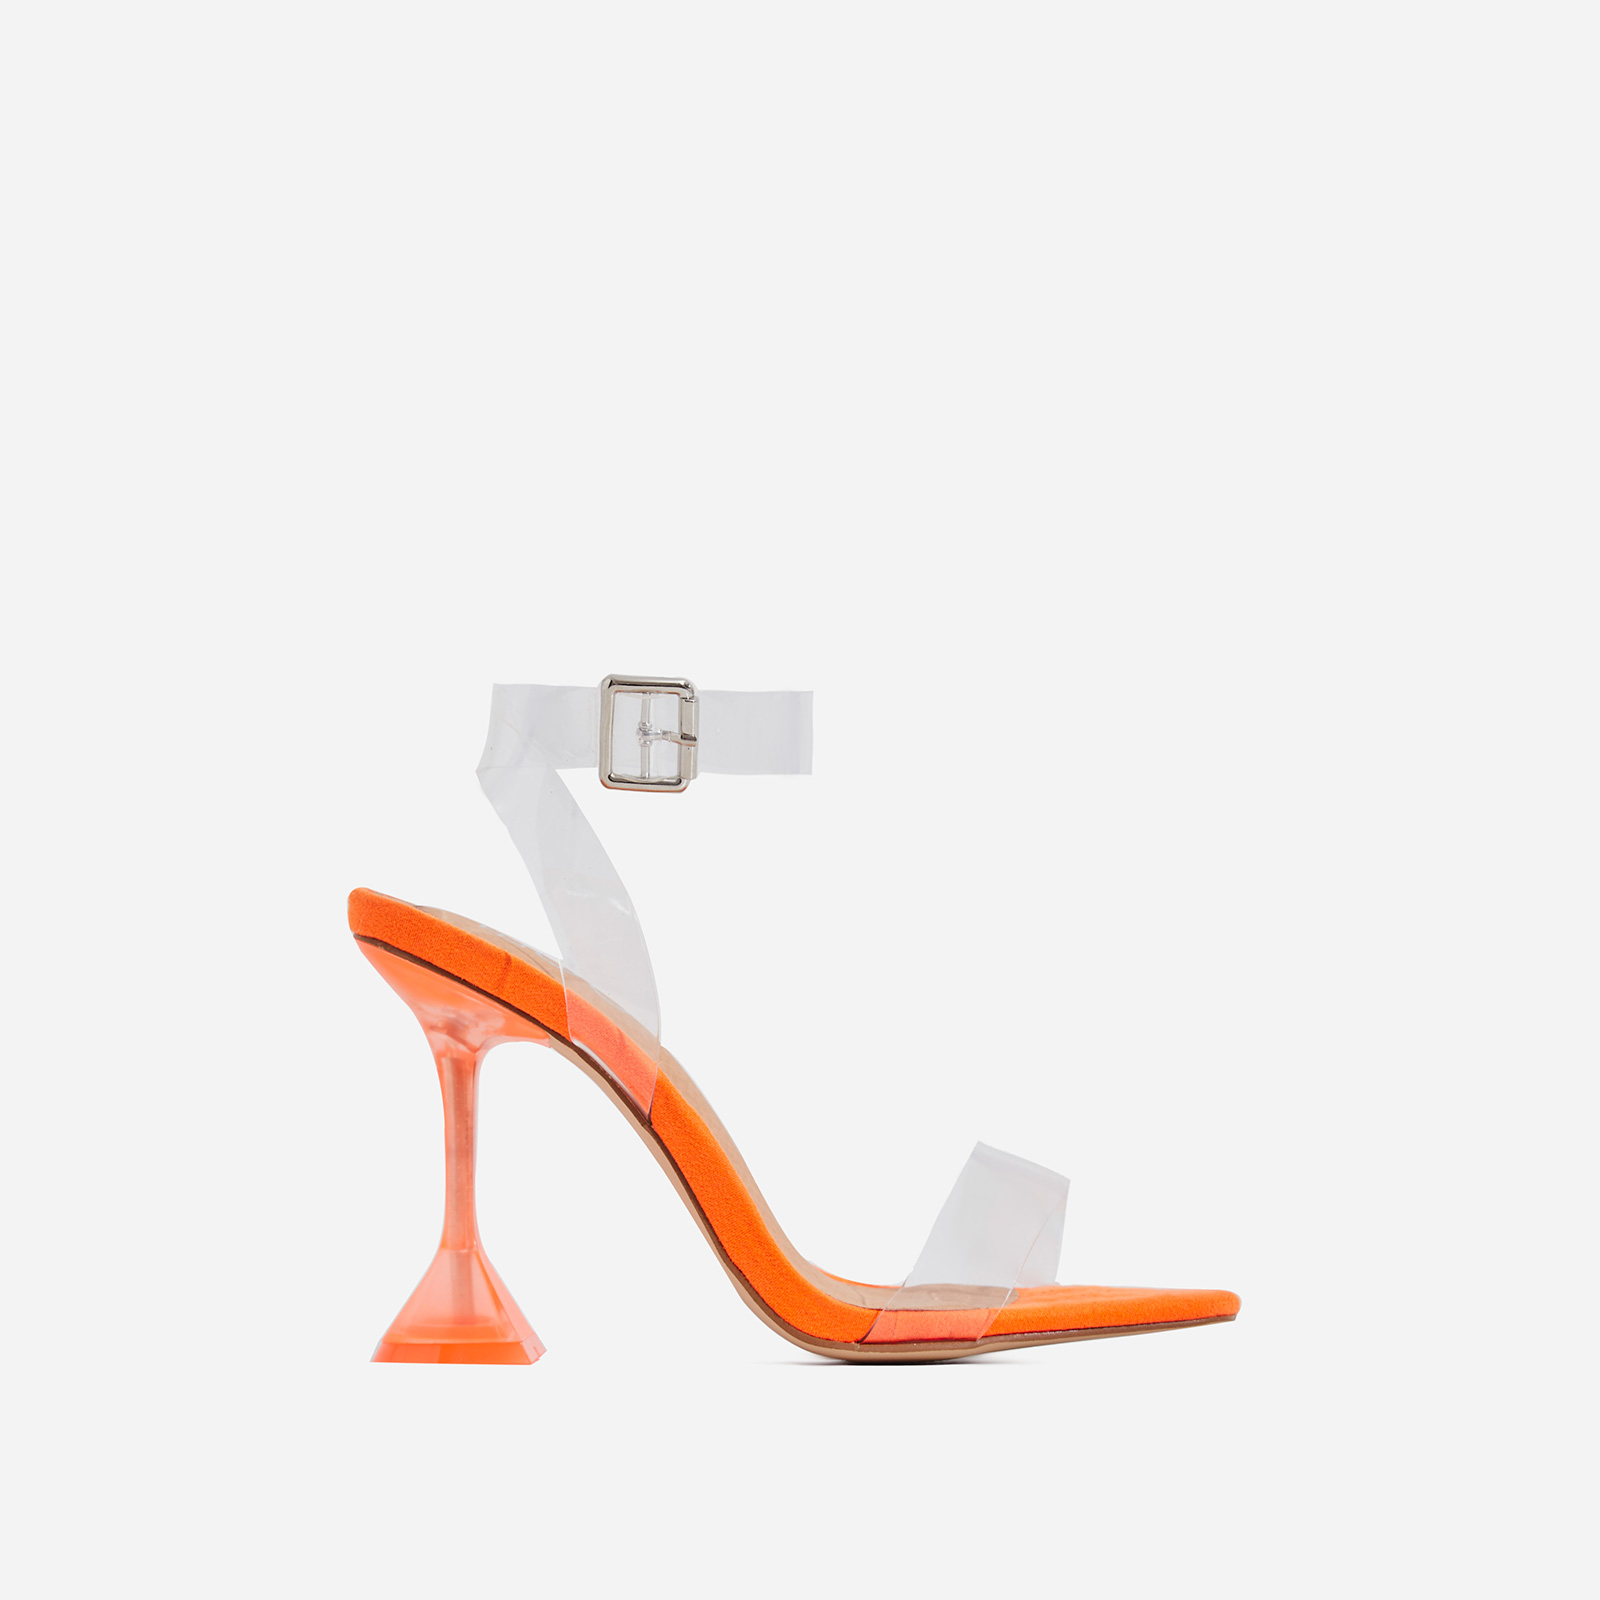 Orange SuedeEgo Marca Barely Perspex In Toe Heel Square Faux There VpMGjLSqUz